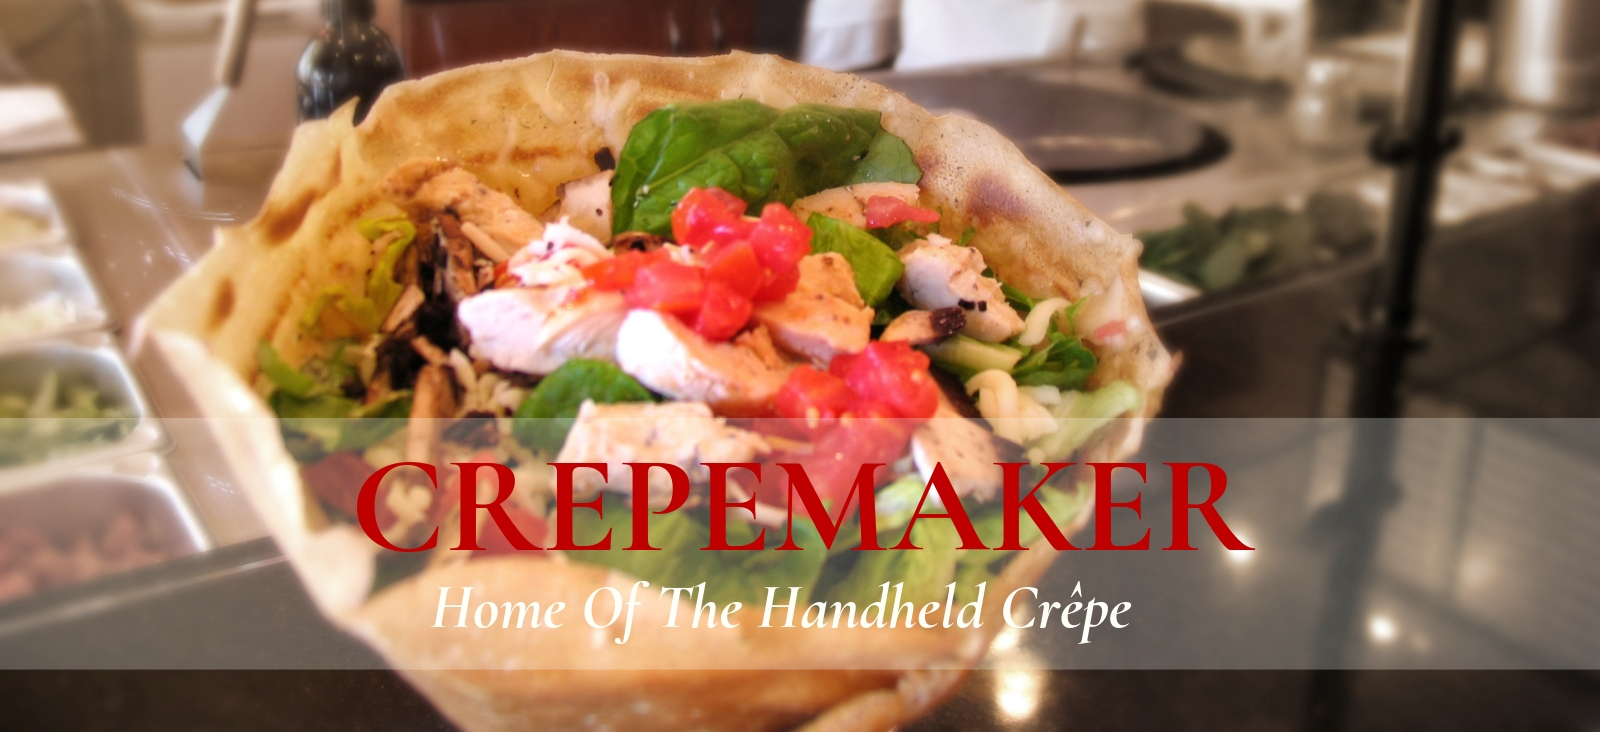 CrepeMaker Home of the Handheld Crepe